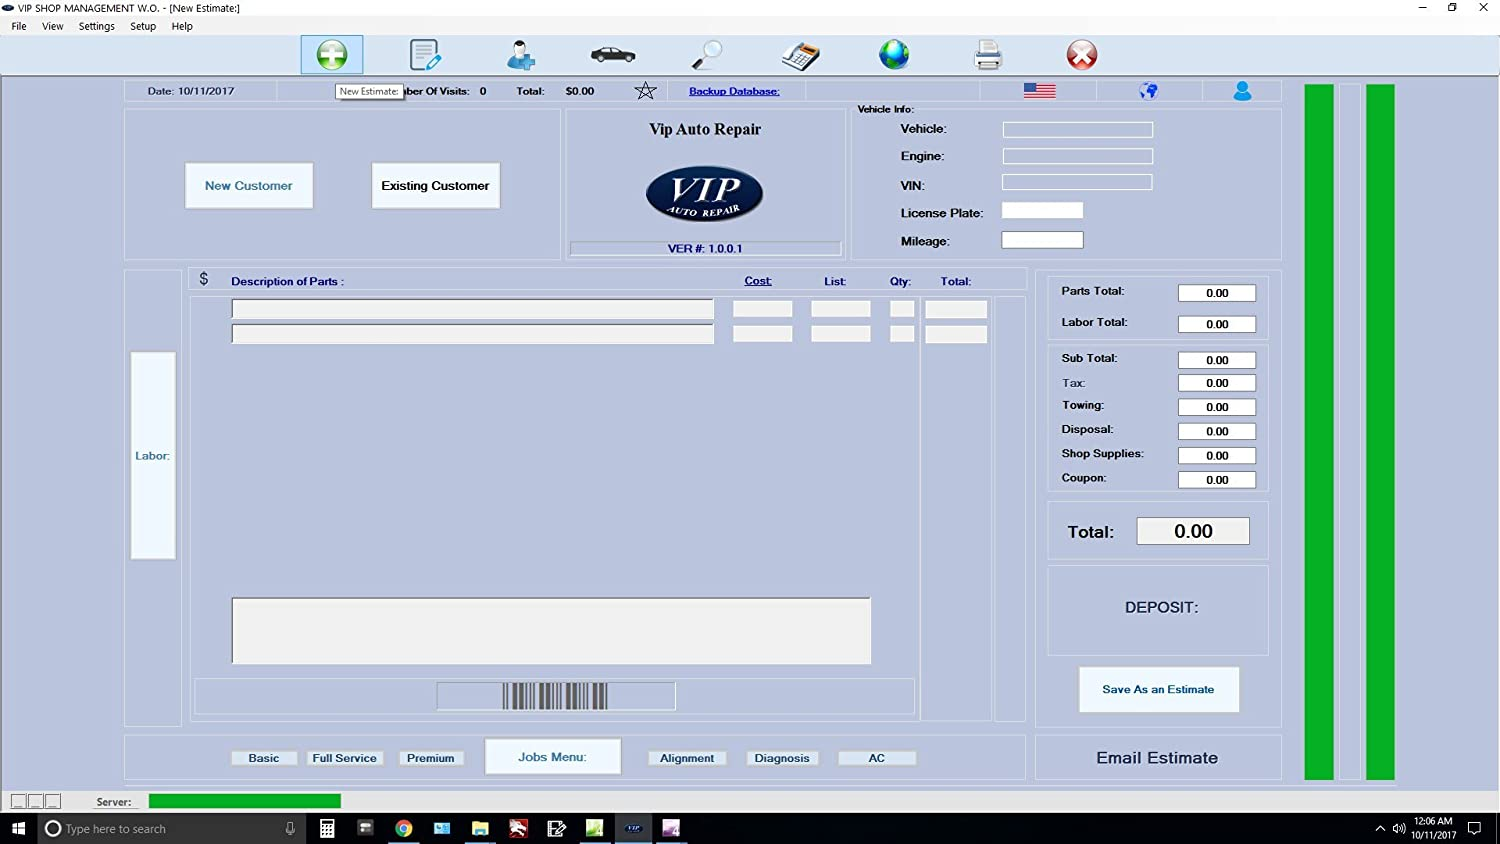 Amazoncom Invoice Software For Auto Repair Shops Vip Shop Management - Easy invoice software free download cheap online makeup stores